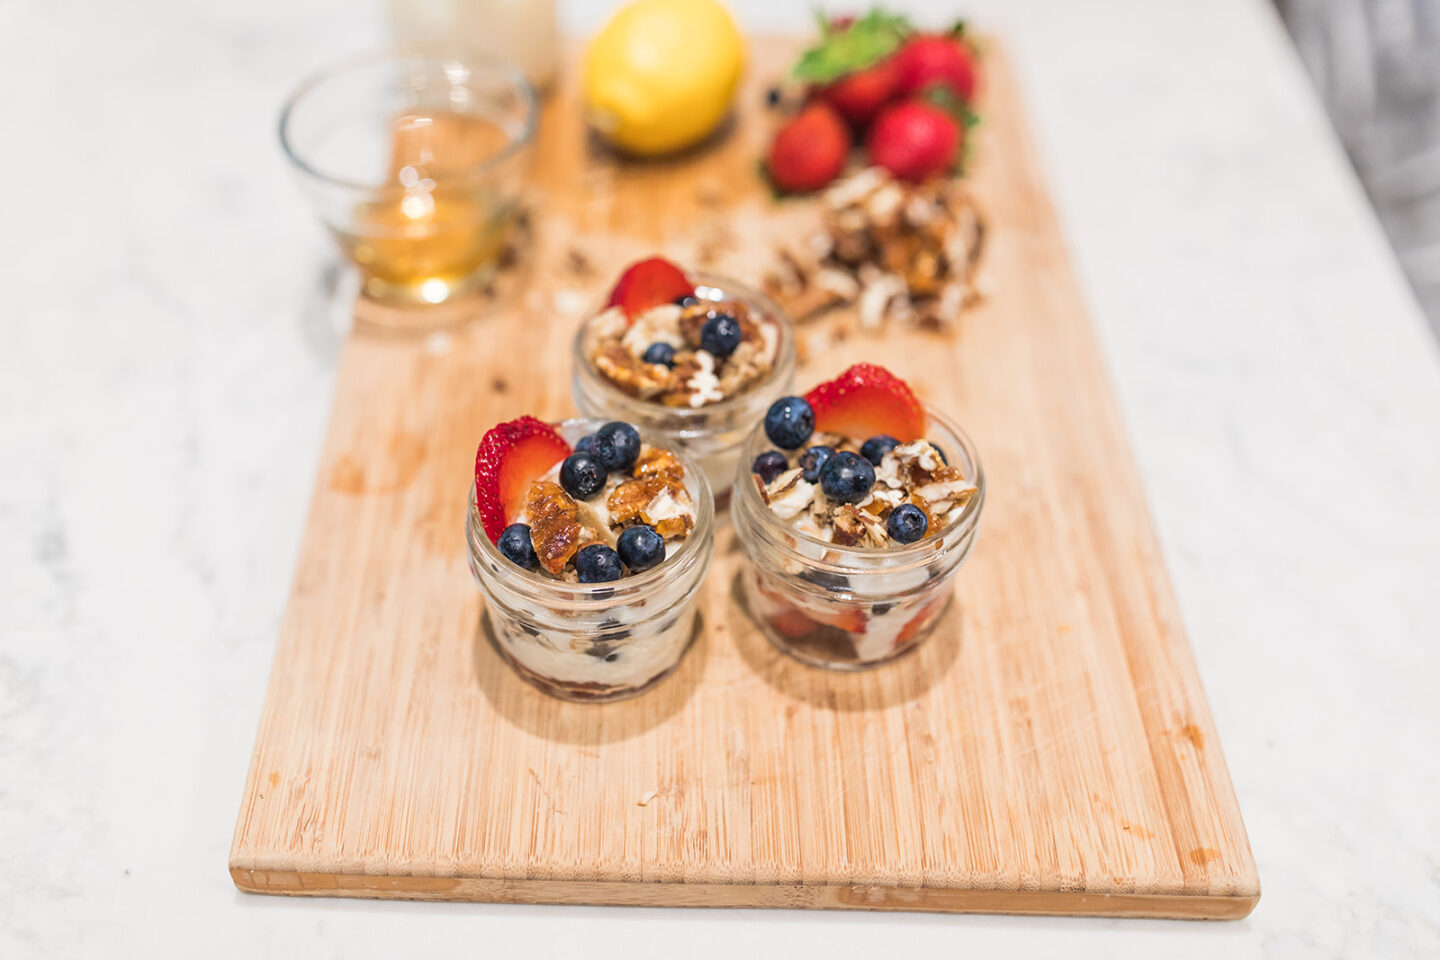 Vegan Berry Parfait Recipe featured by top Atlanta lifestyle blogger, Moderately High Maintenance | Vegan Parfait by popular Atlanta lifestyle blog, Moderately High Maintenance: image of yogurt parfaits with blueberries, strawberries, and chopped nuts in mason jars.